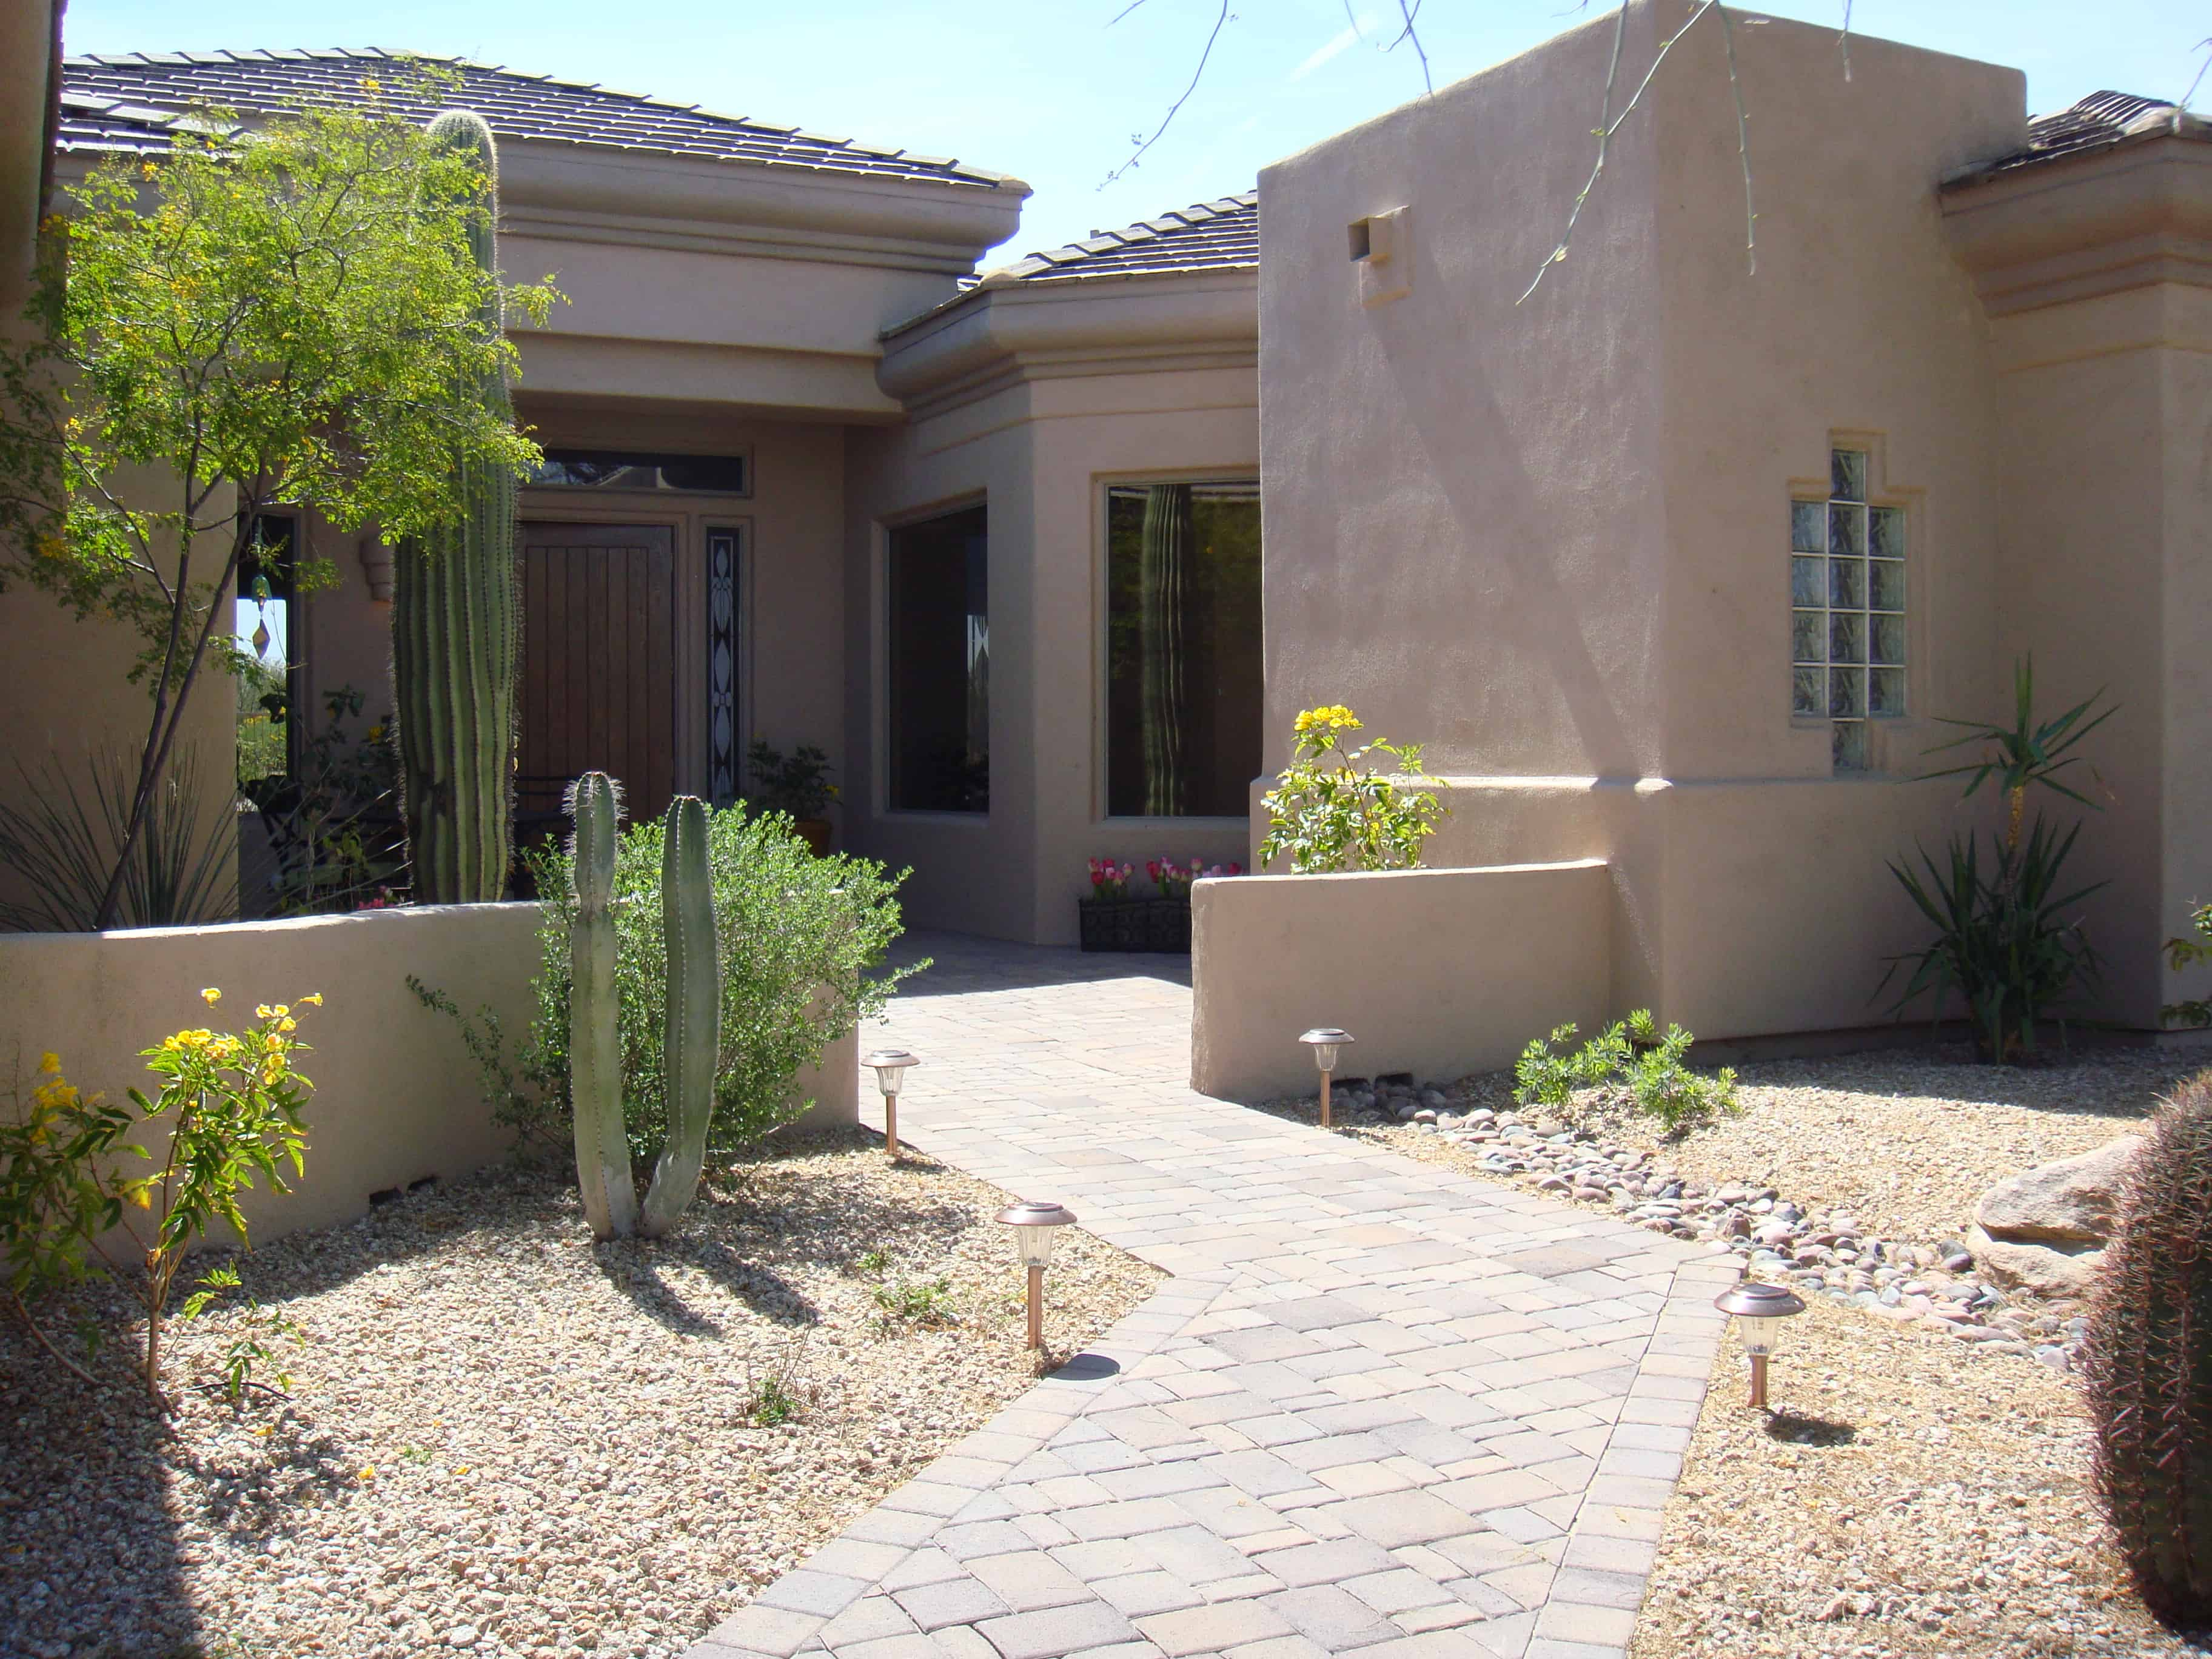 Look up homeowner associations in Arizona by address.